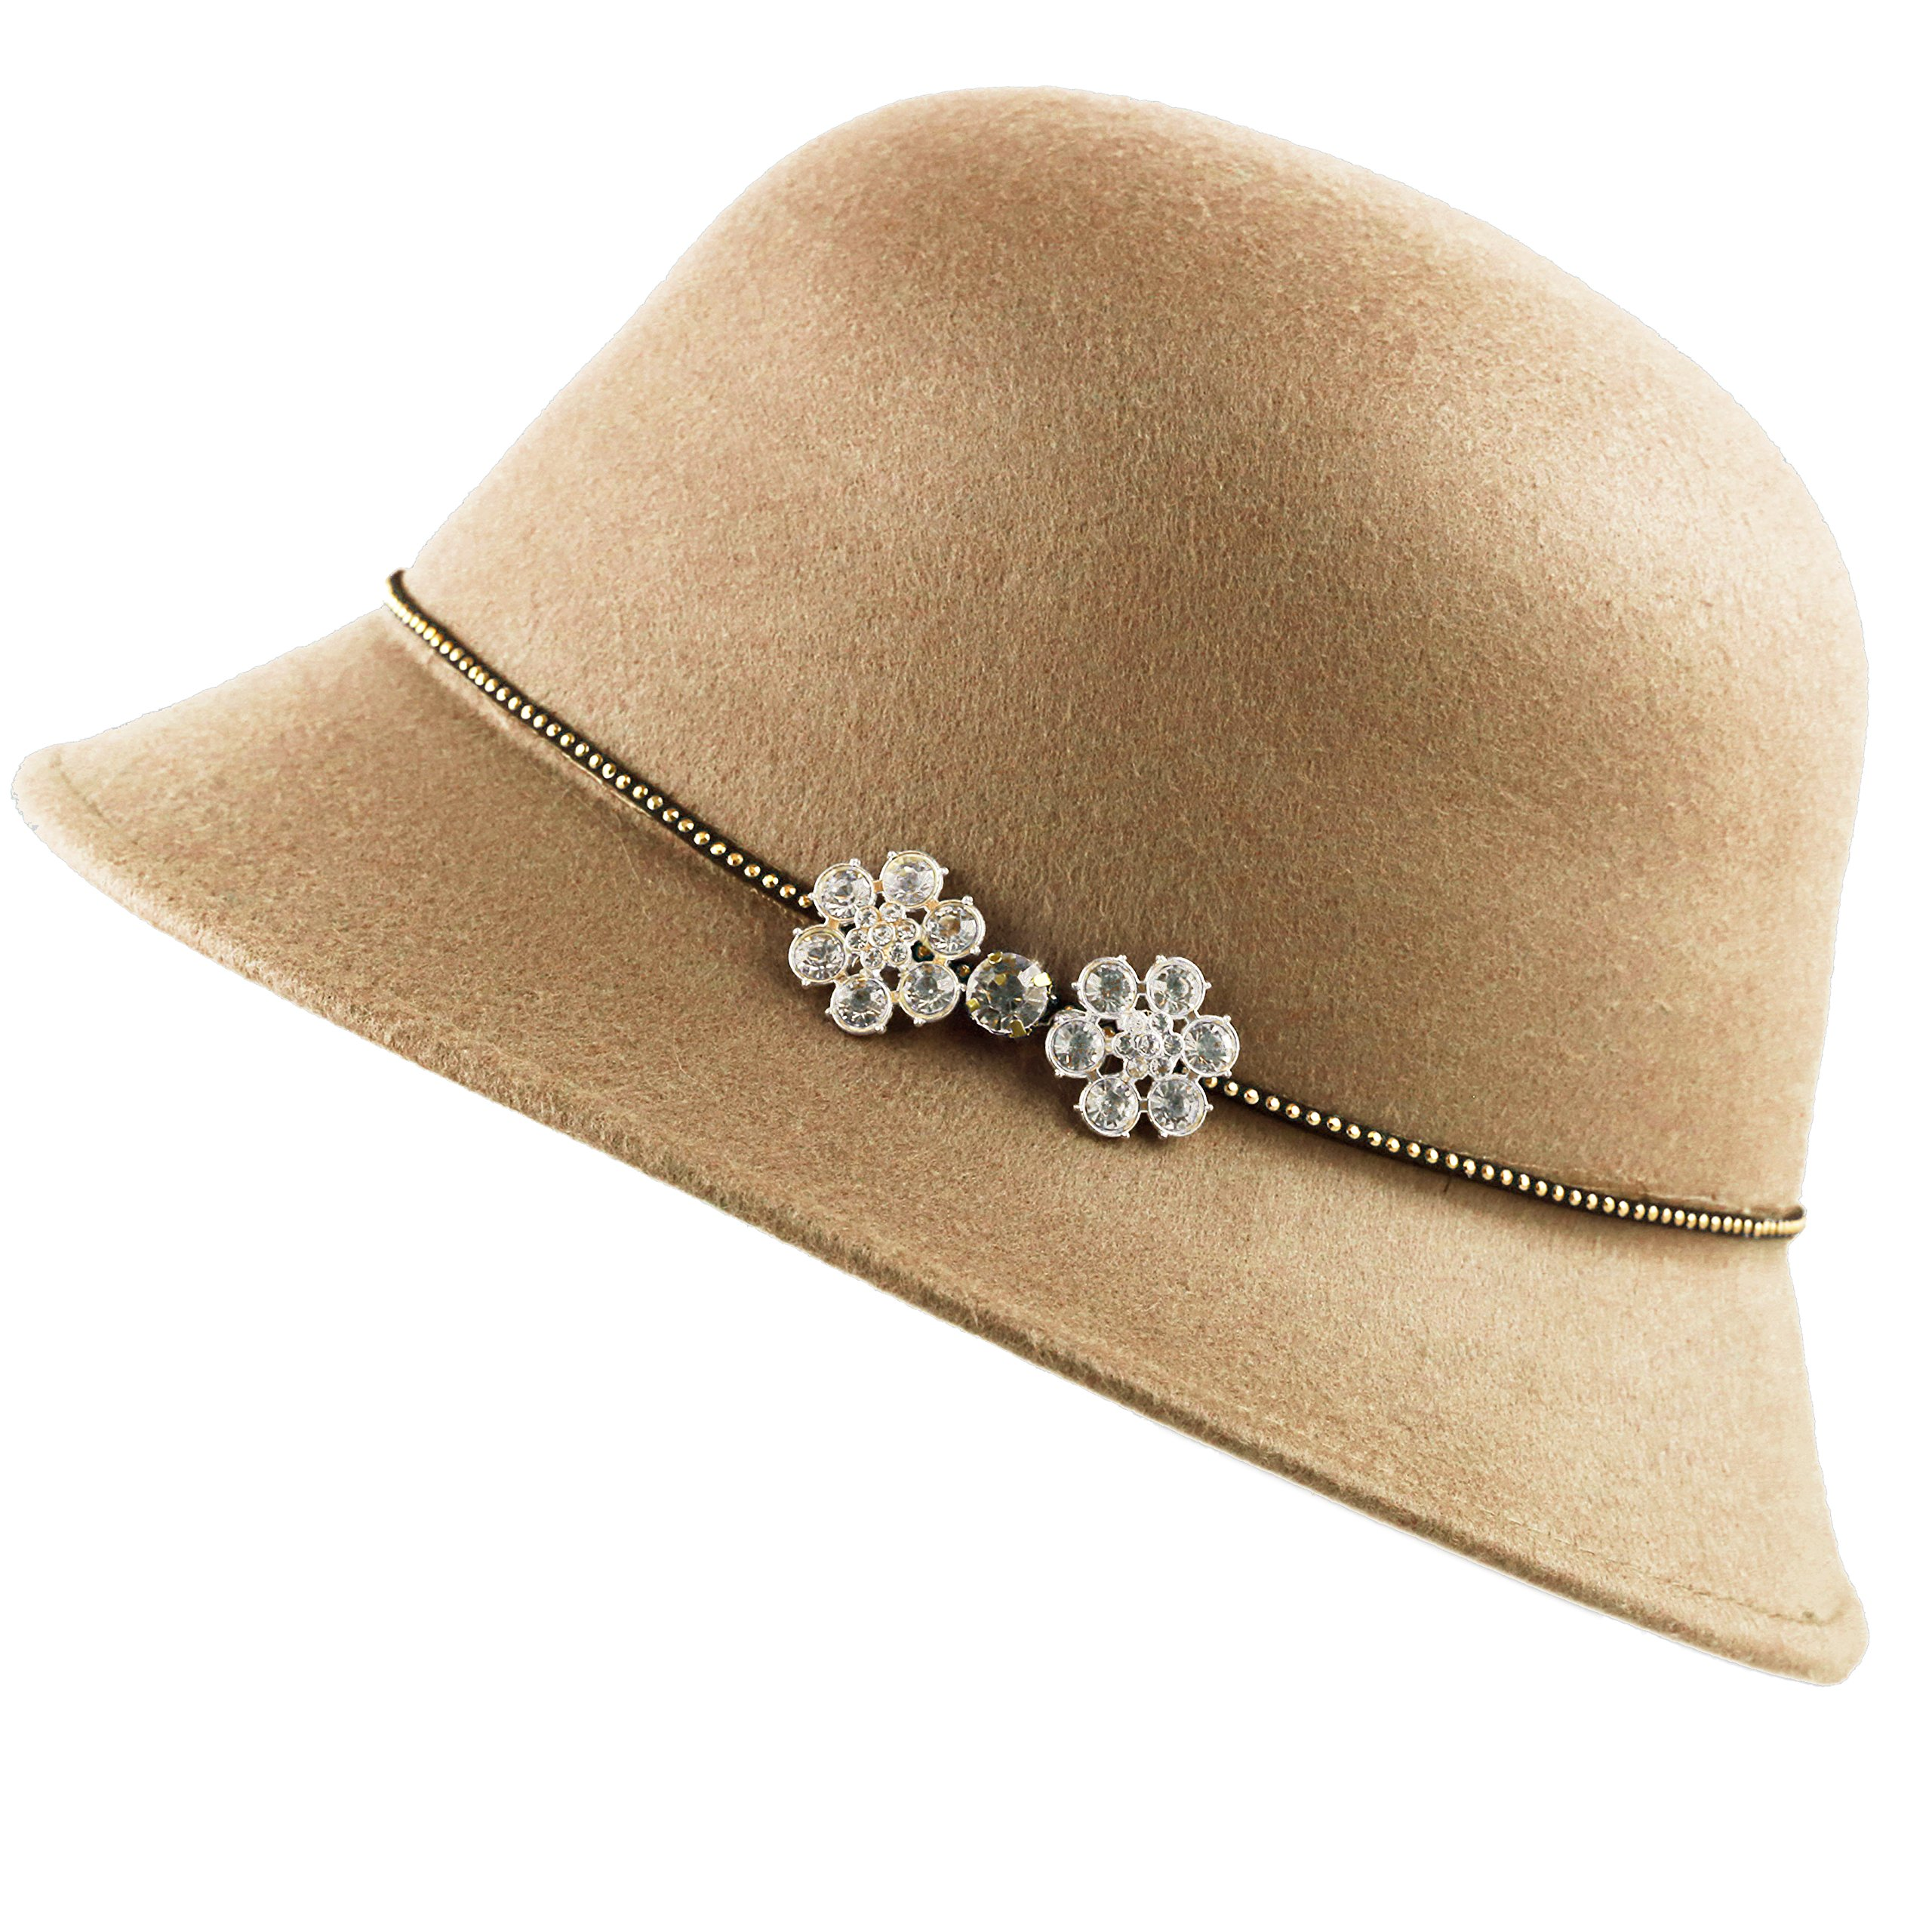 THE HAT DEPOT Felt Cloche Winter Hat With Studded Band Rhinestone Flower (Camel)